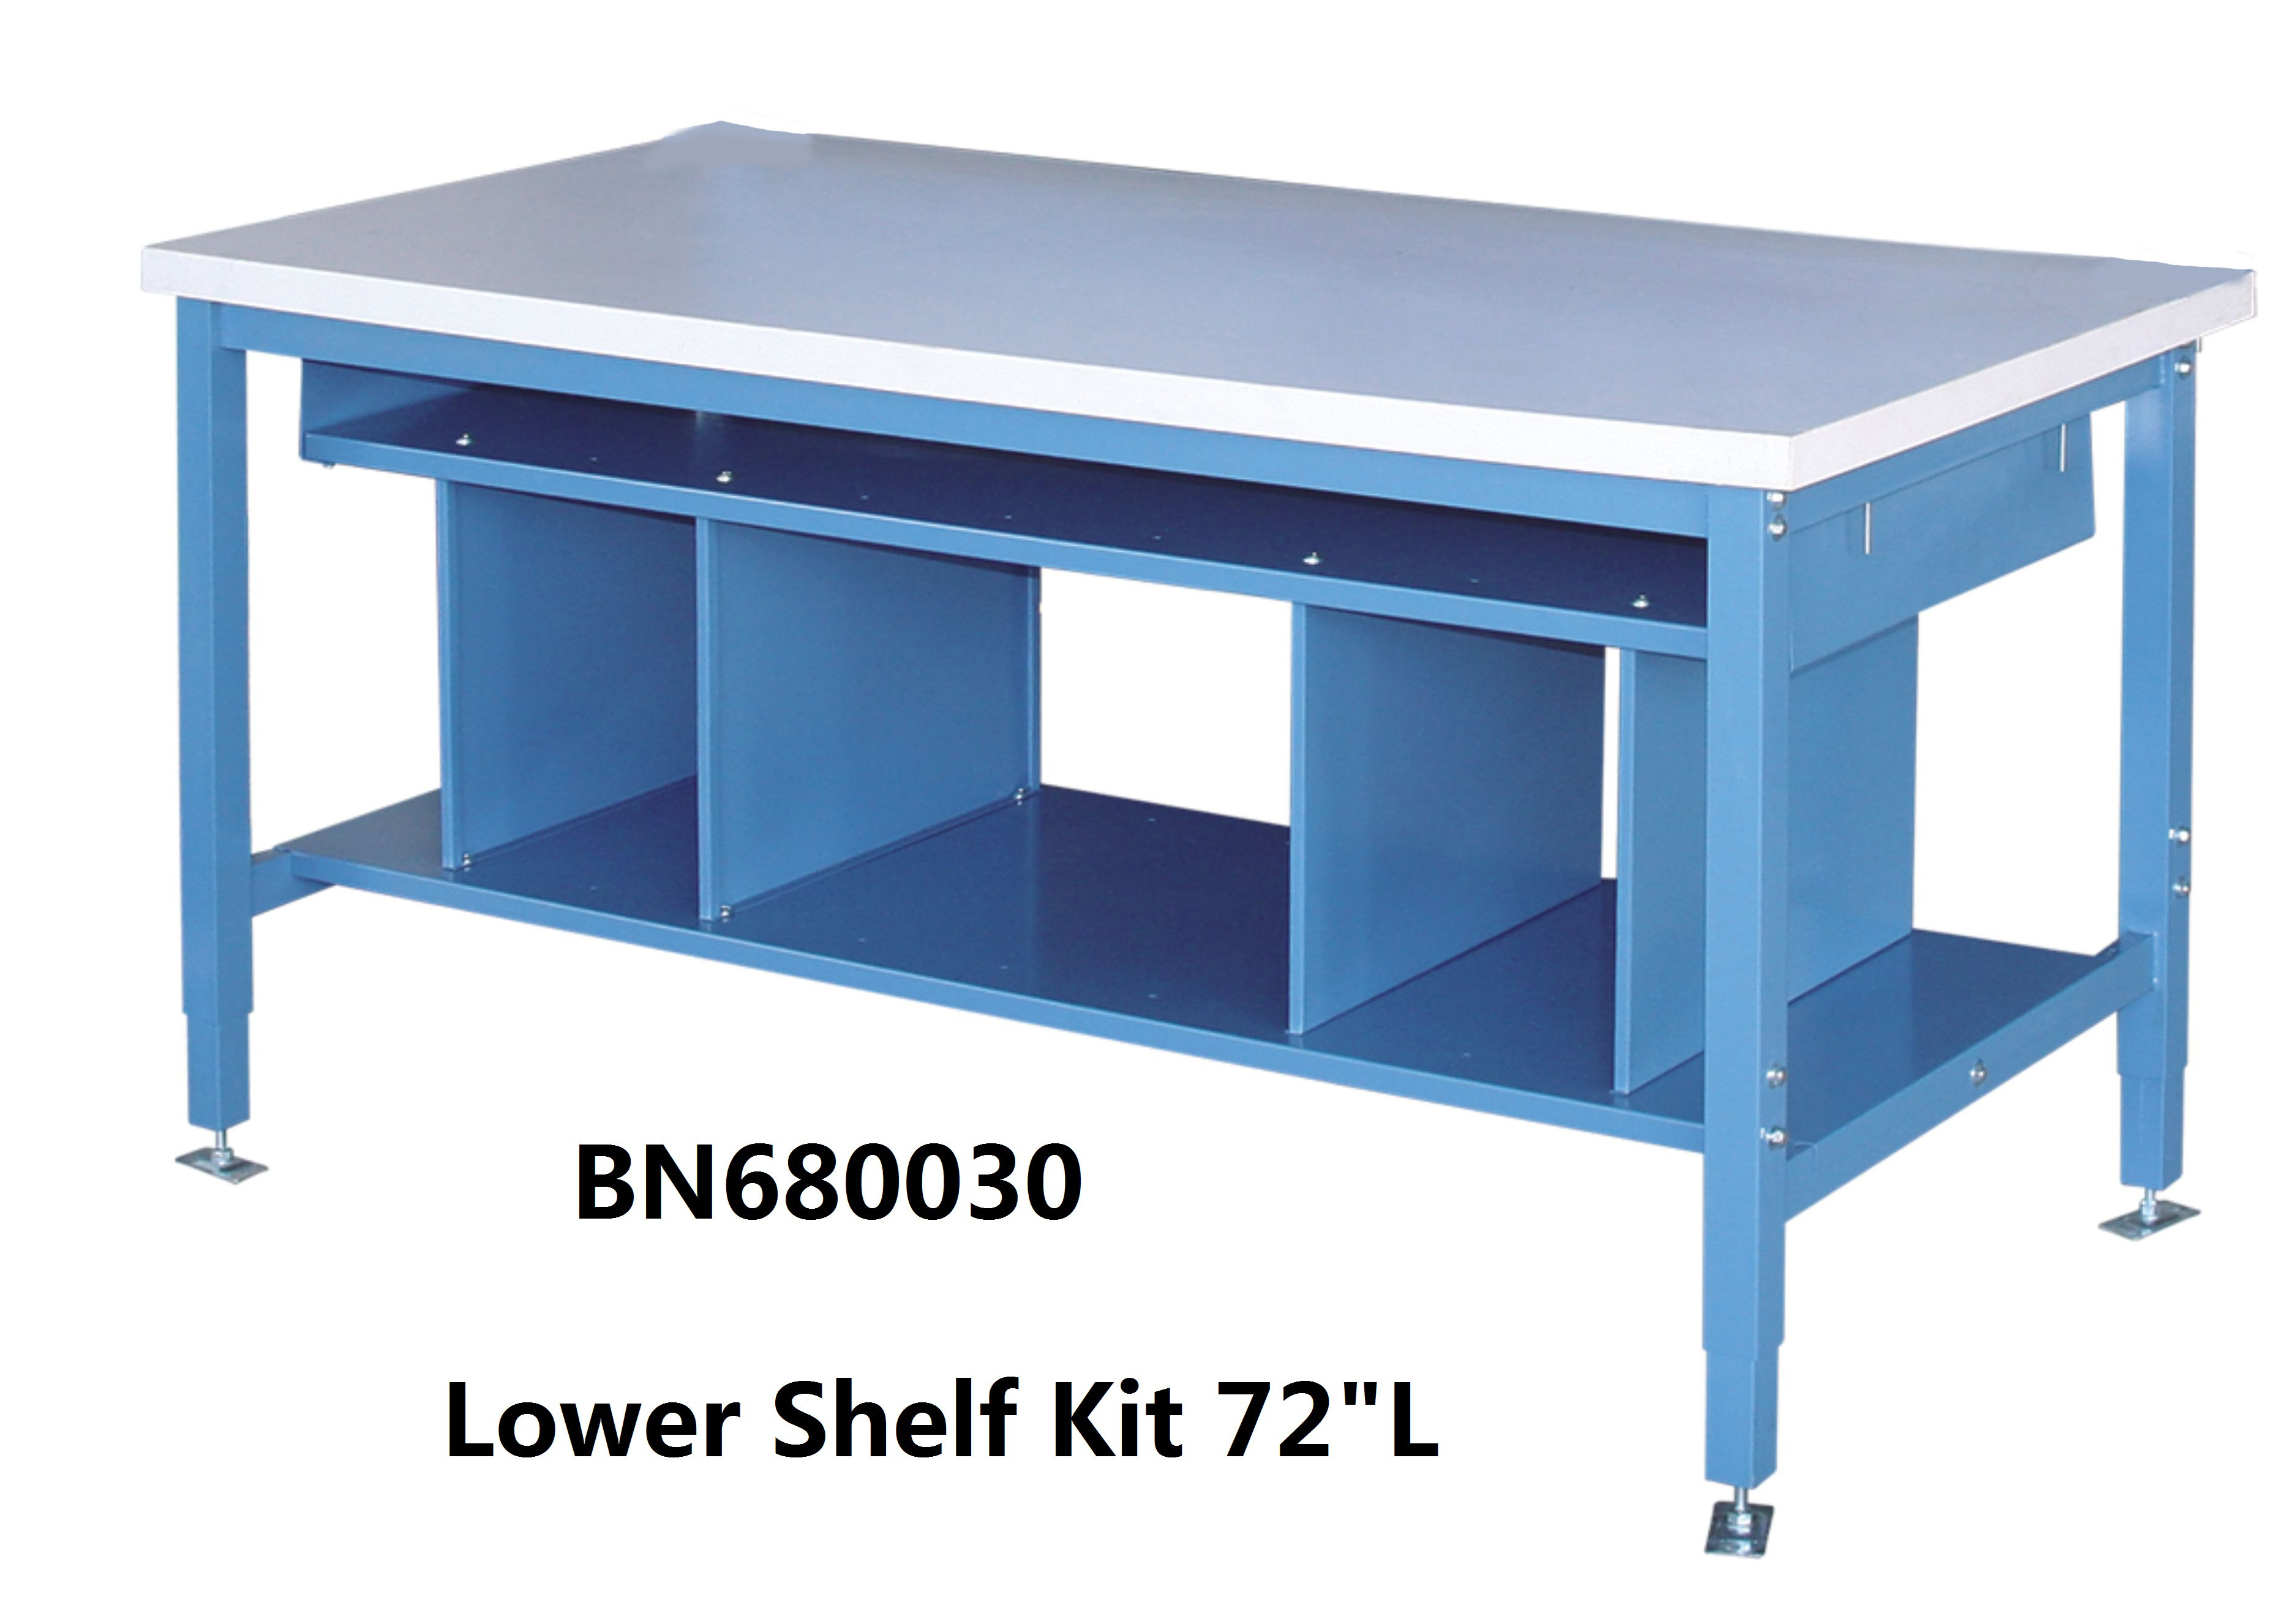 Multi Purpose Industrial Work Benches Lower Shelf Kit For Divider Space 72  Inch Wide